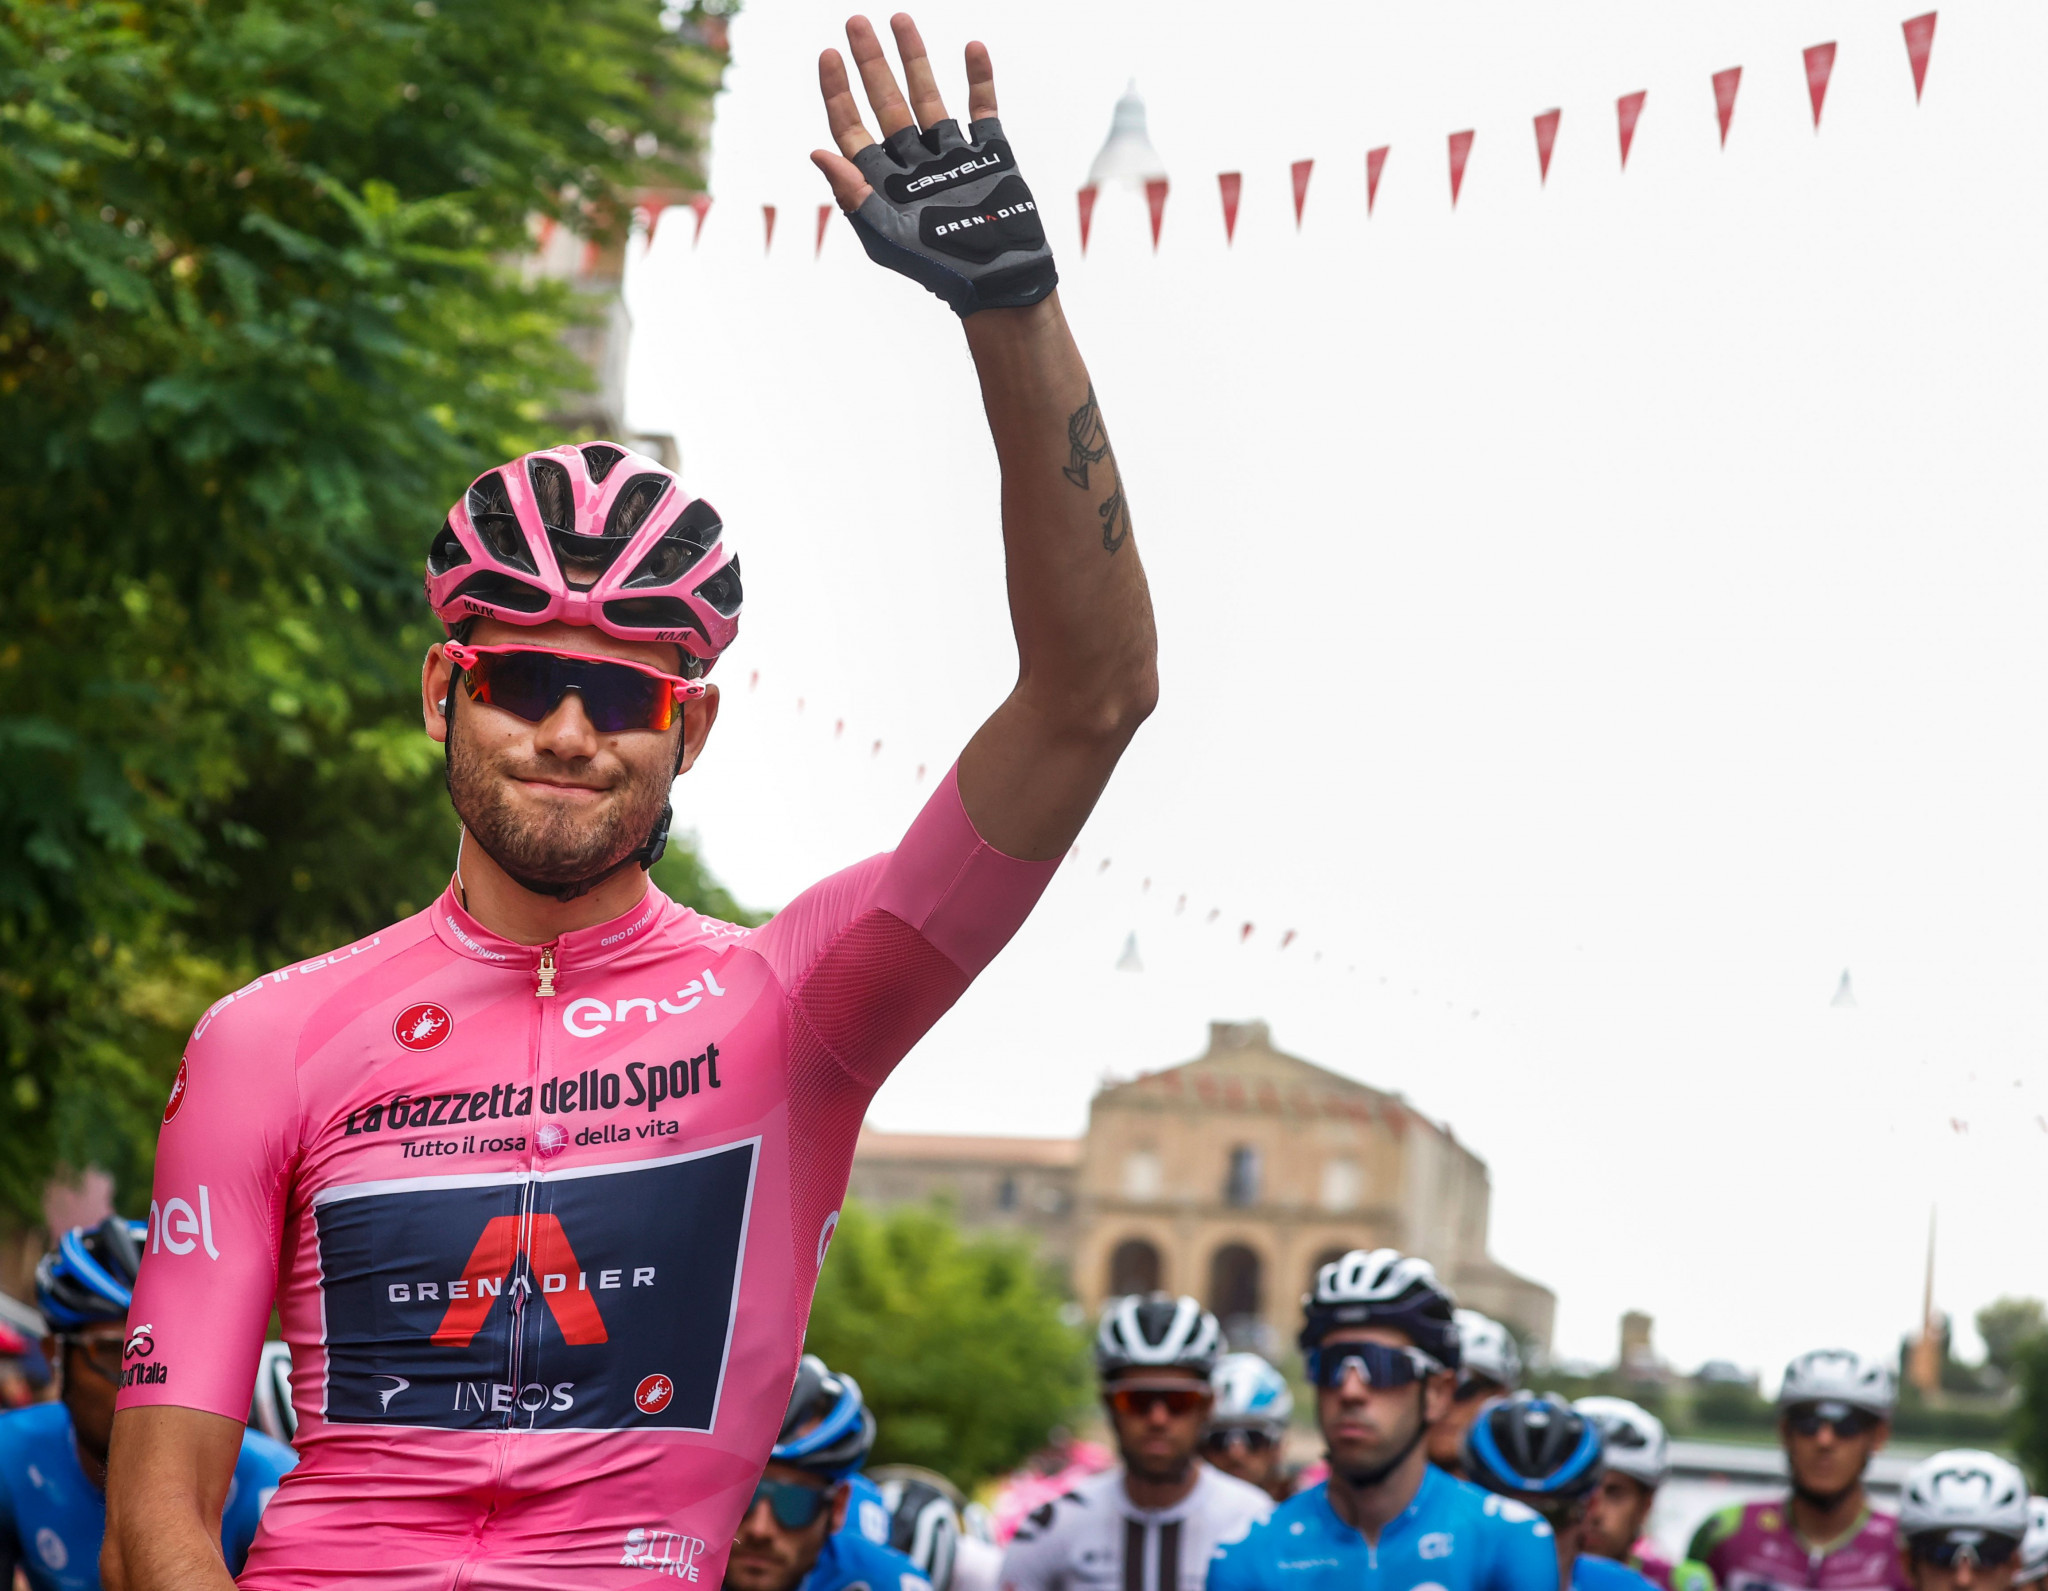 Filippo Ganna won four stages at this year's Giro d'Italia and wore the race leader's jersey in the early stages ©Getty Images